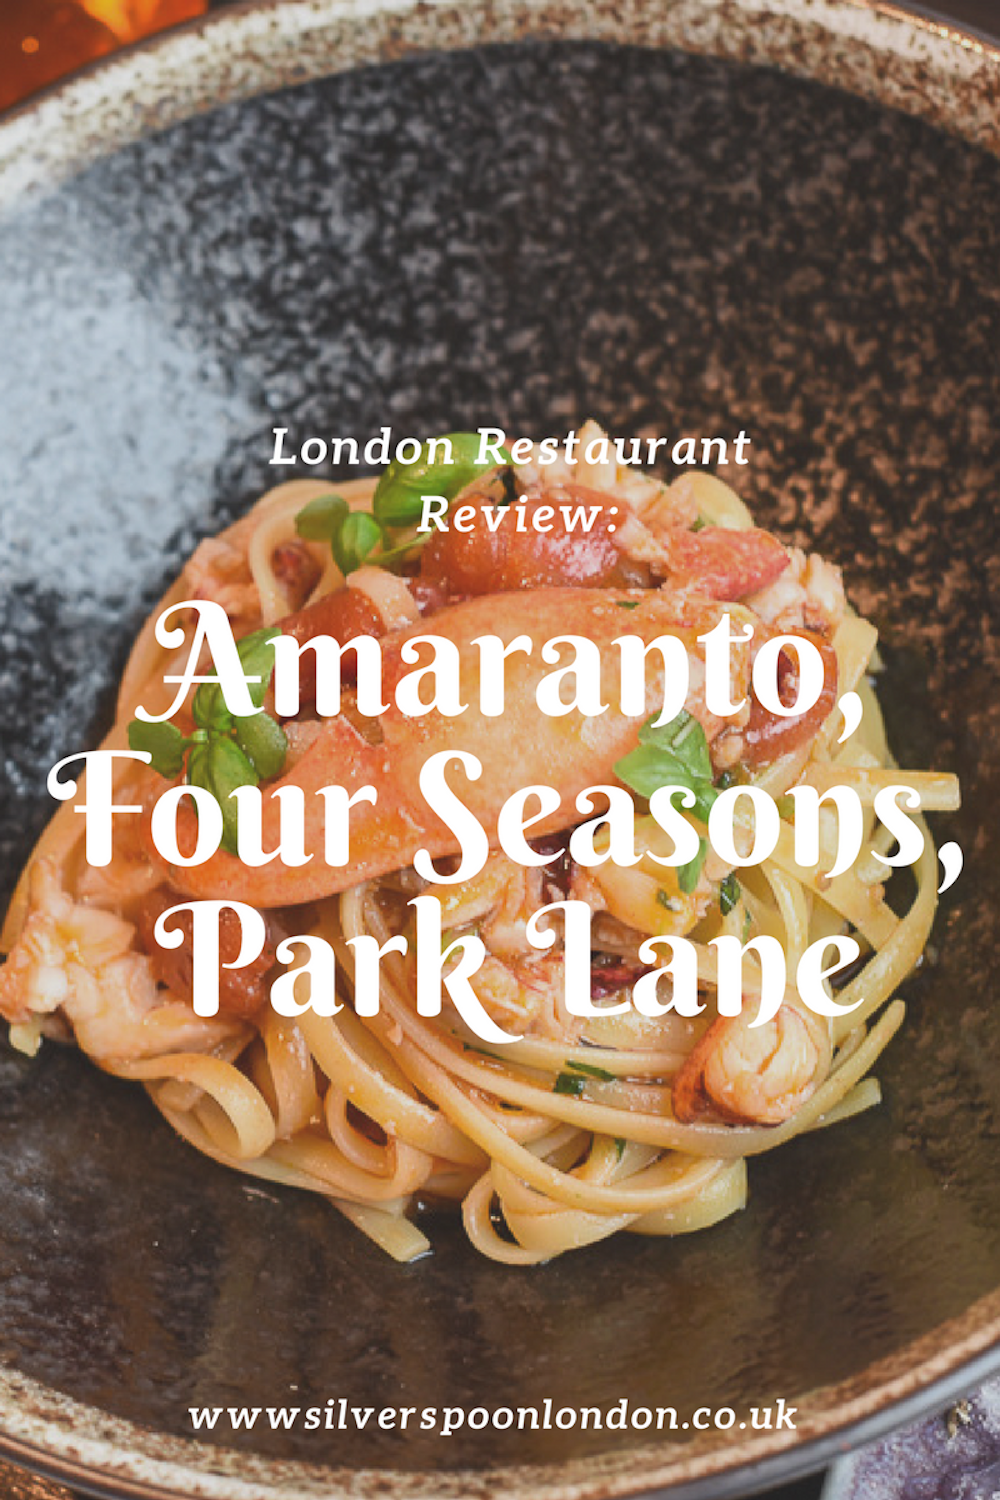 London restaurant review: Amaranto